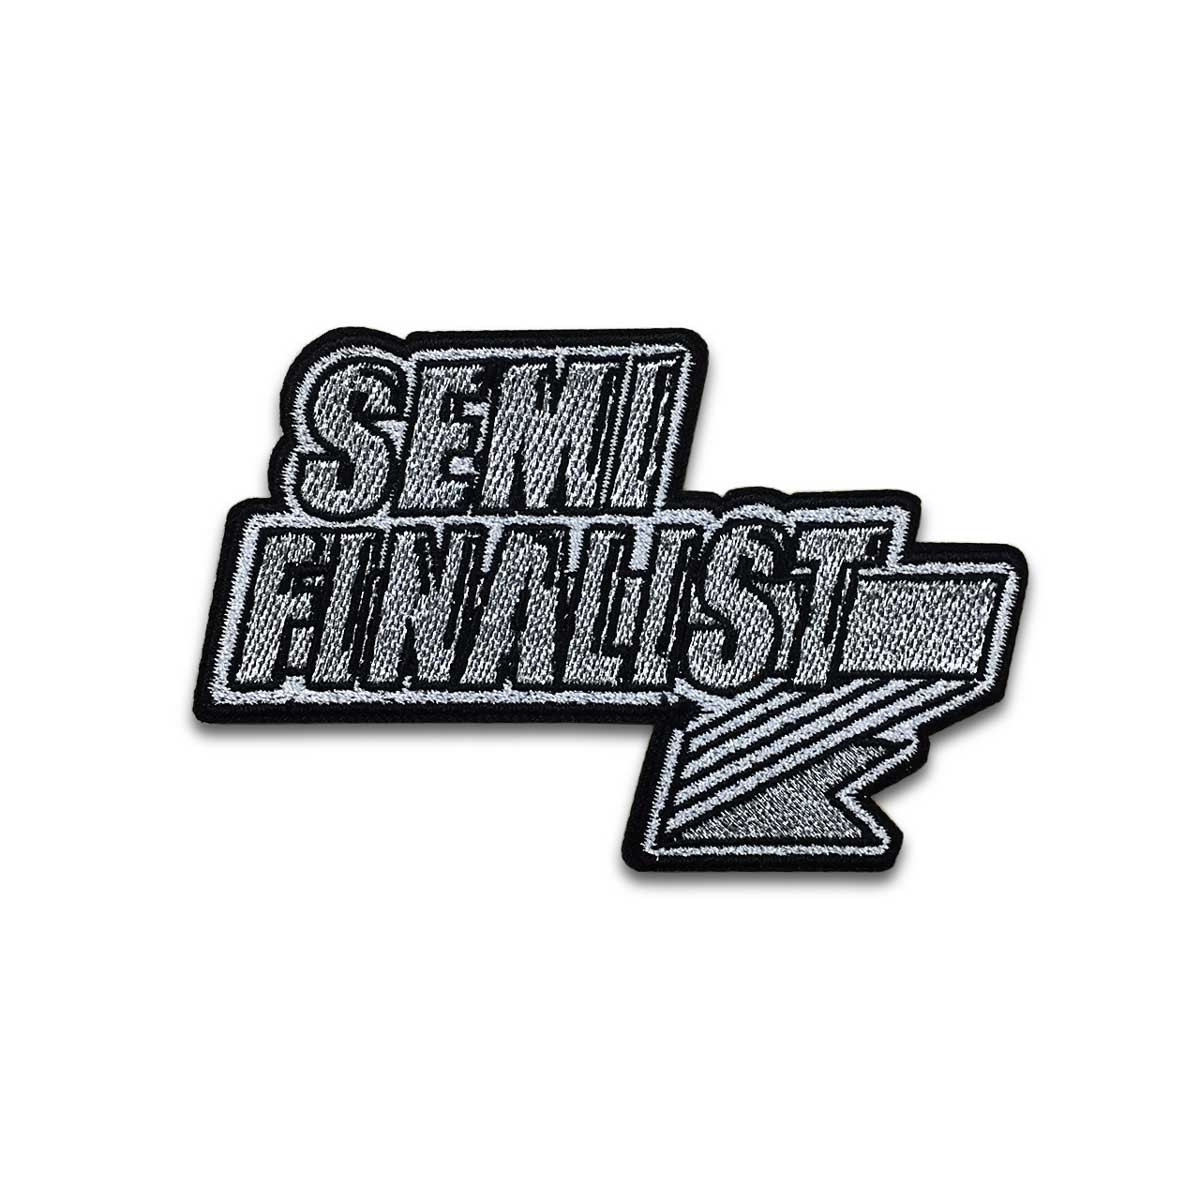 Semi-Finalist Patch